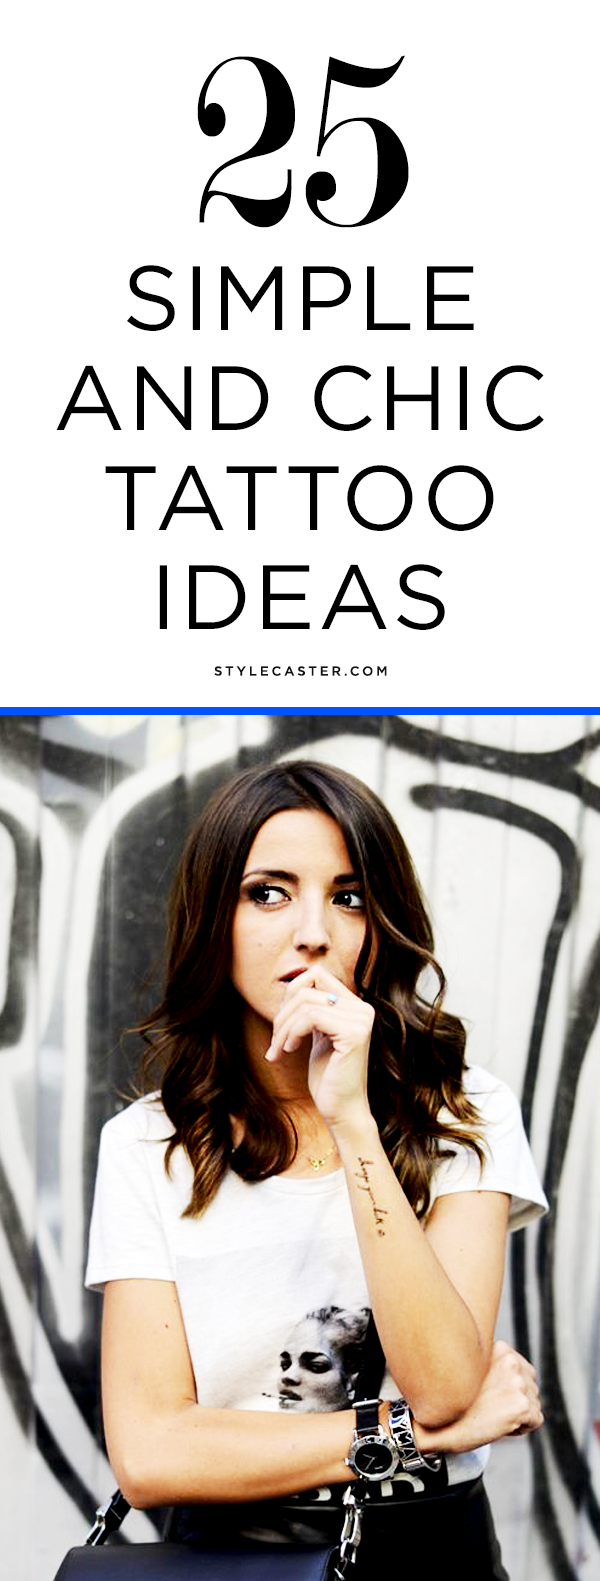 tattoo ideas that are simple but stunning tattoos and